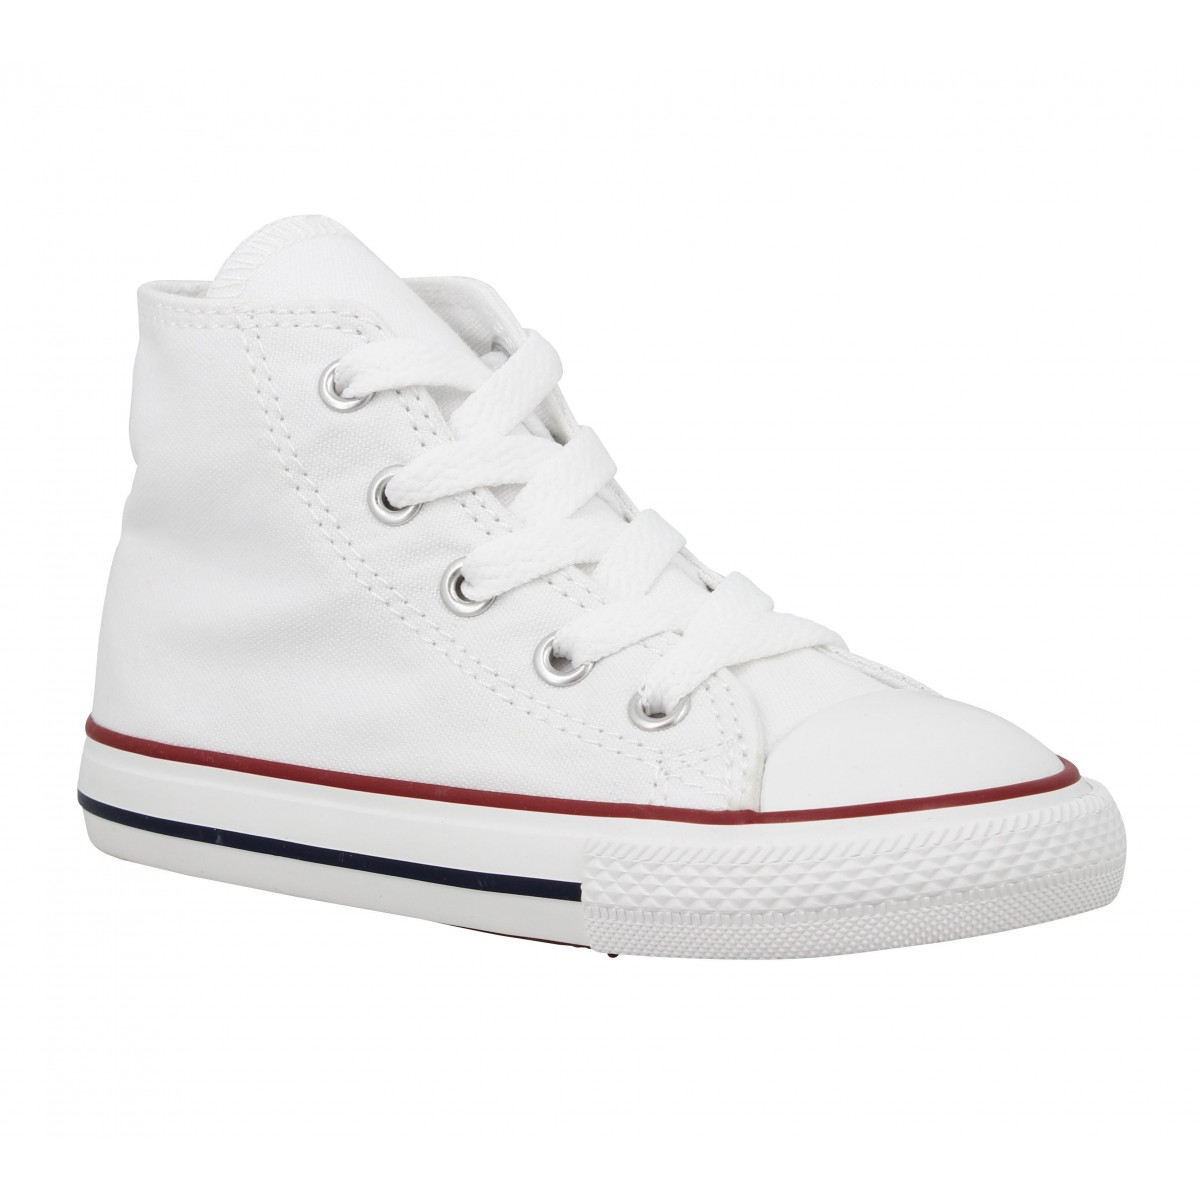 Baskets CONVERSE Chuck Taylor All Star Hi toile Enfant Blanc